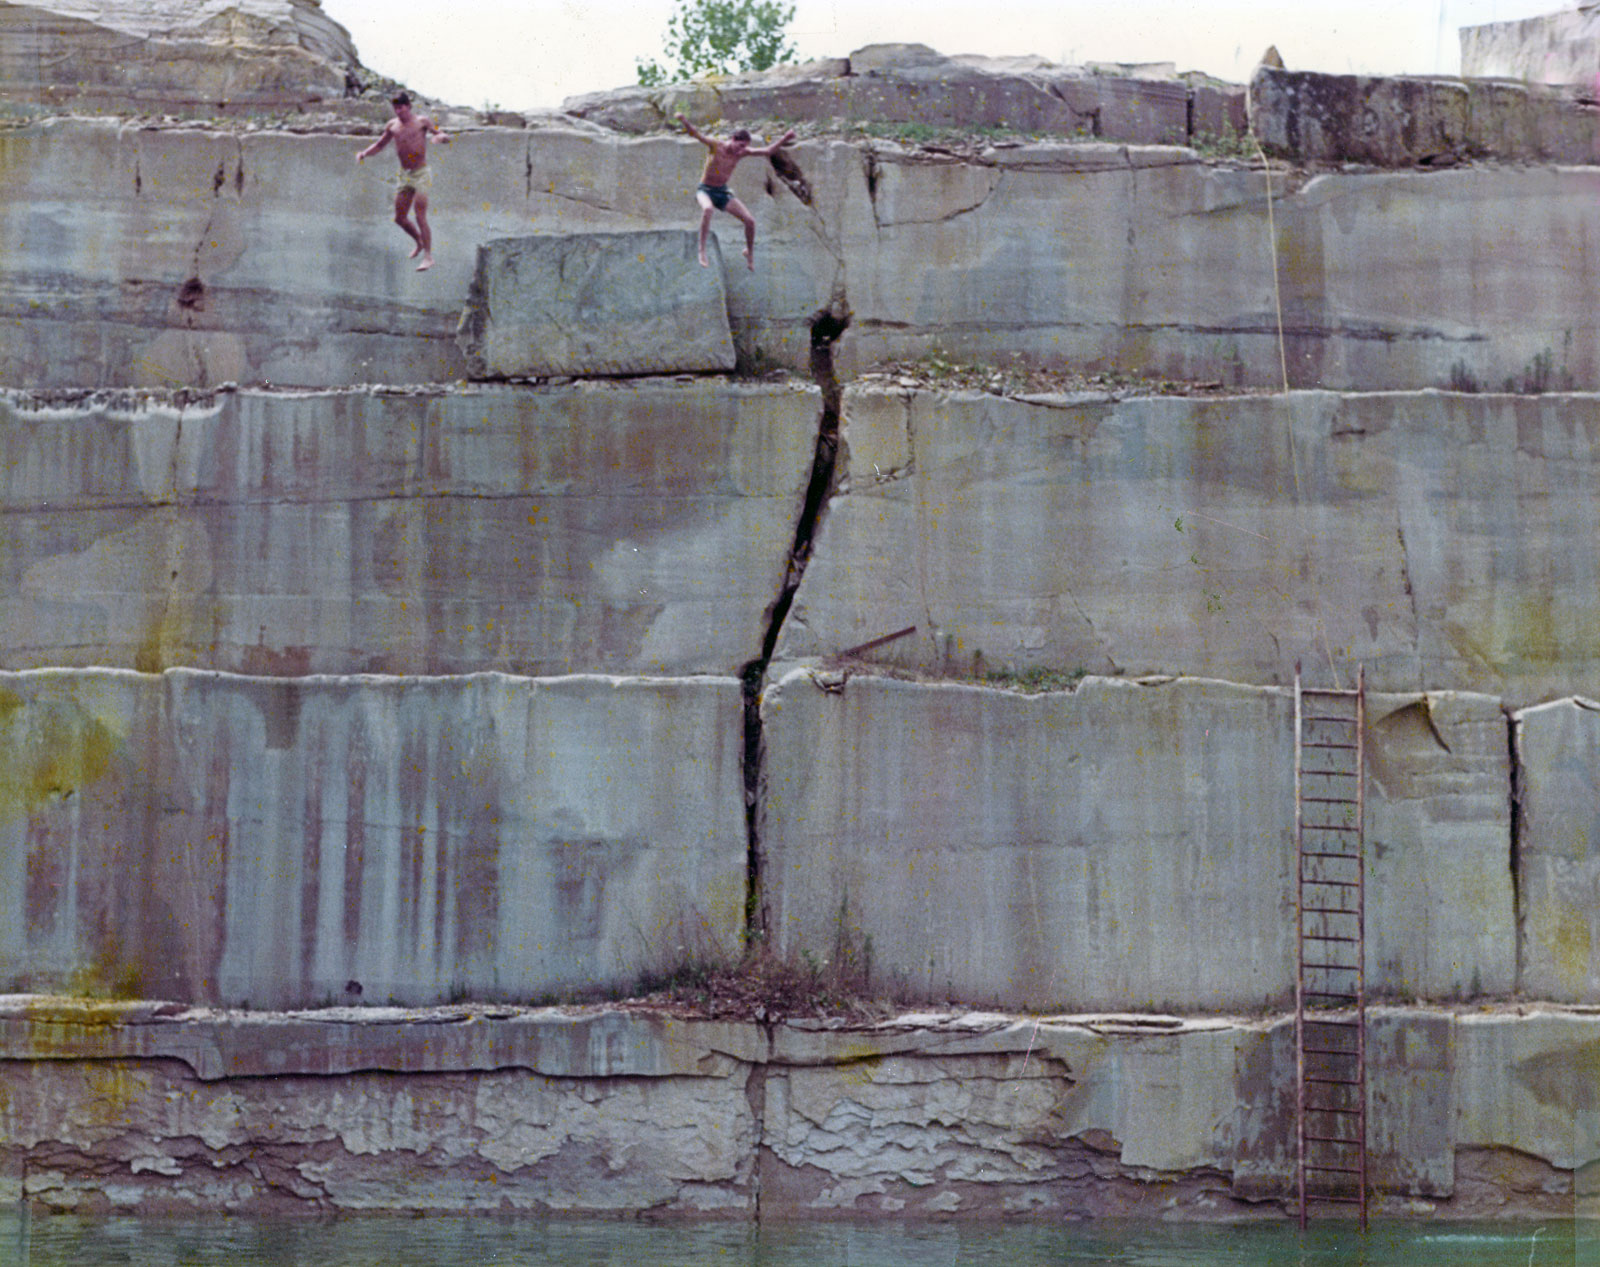 Fran and Paul Dodd jumping off rock in Bloomington Long Hole quarry